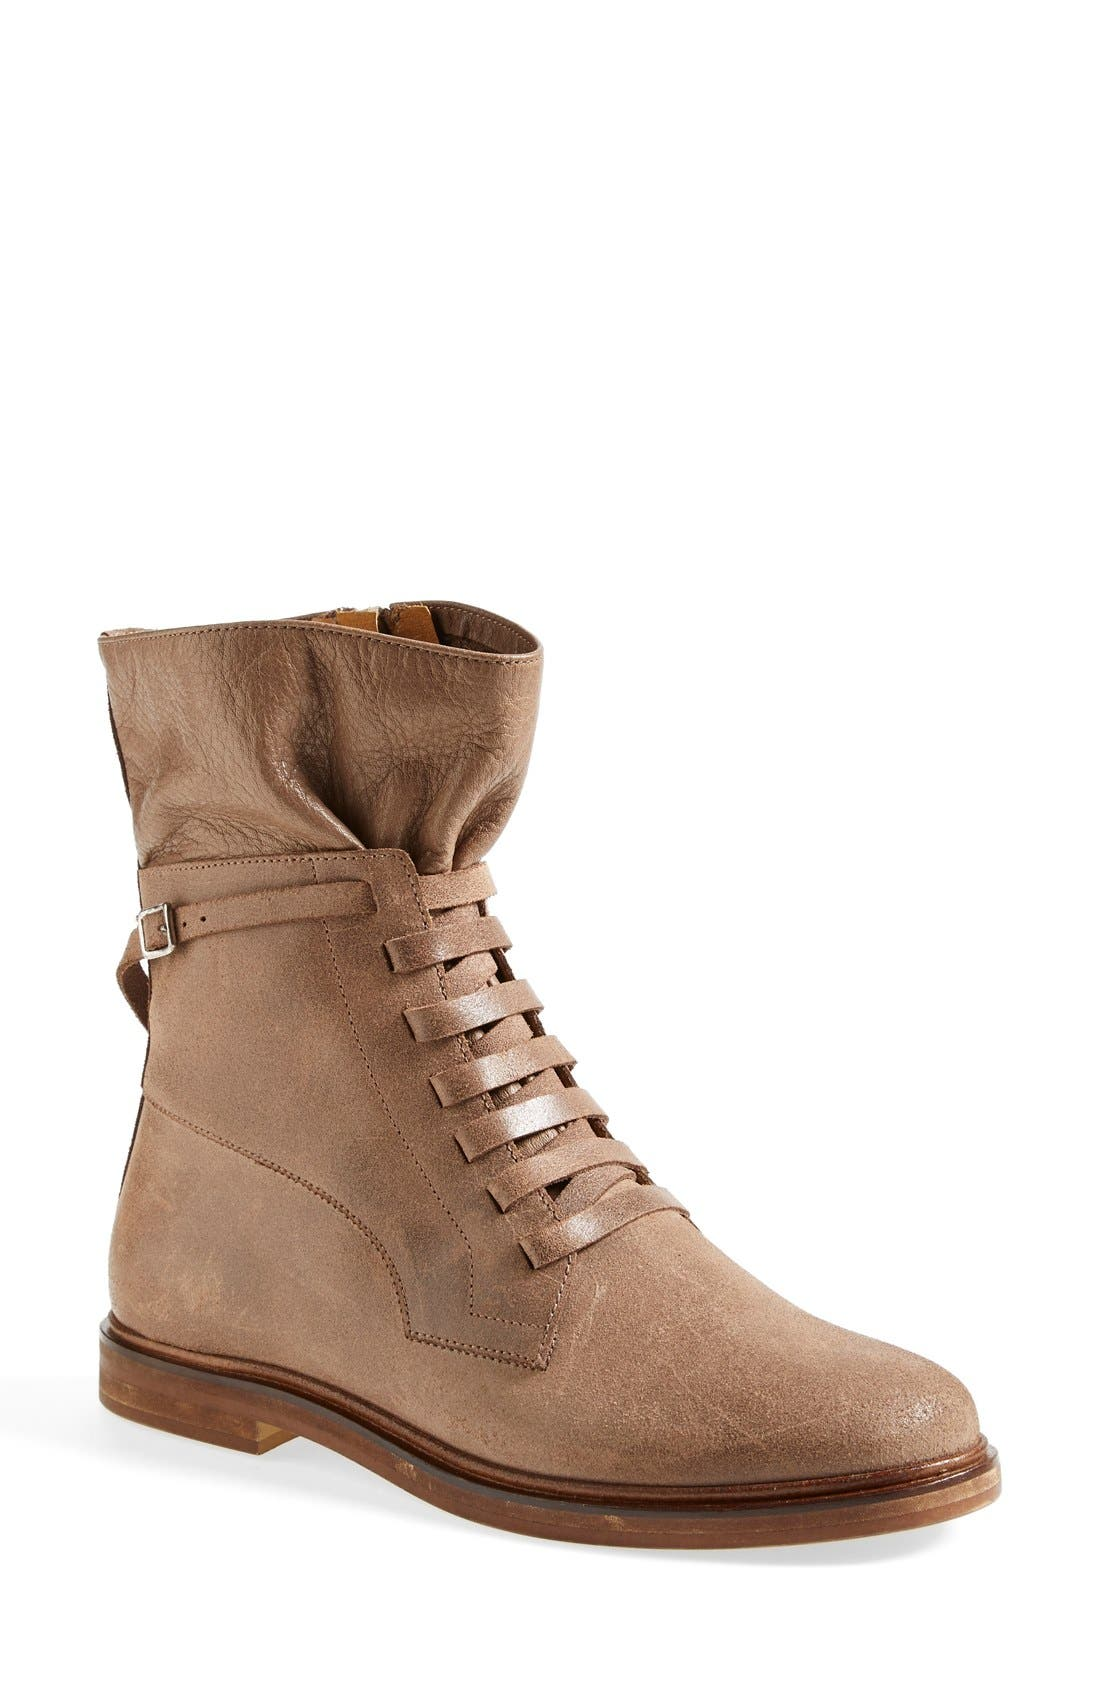 Alternate Image 1 Selected - MM6 Maison Margiela Lace-Up Boot (Women)